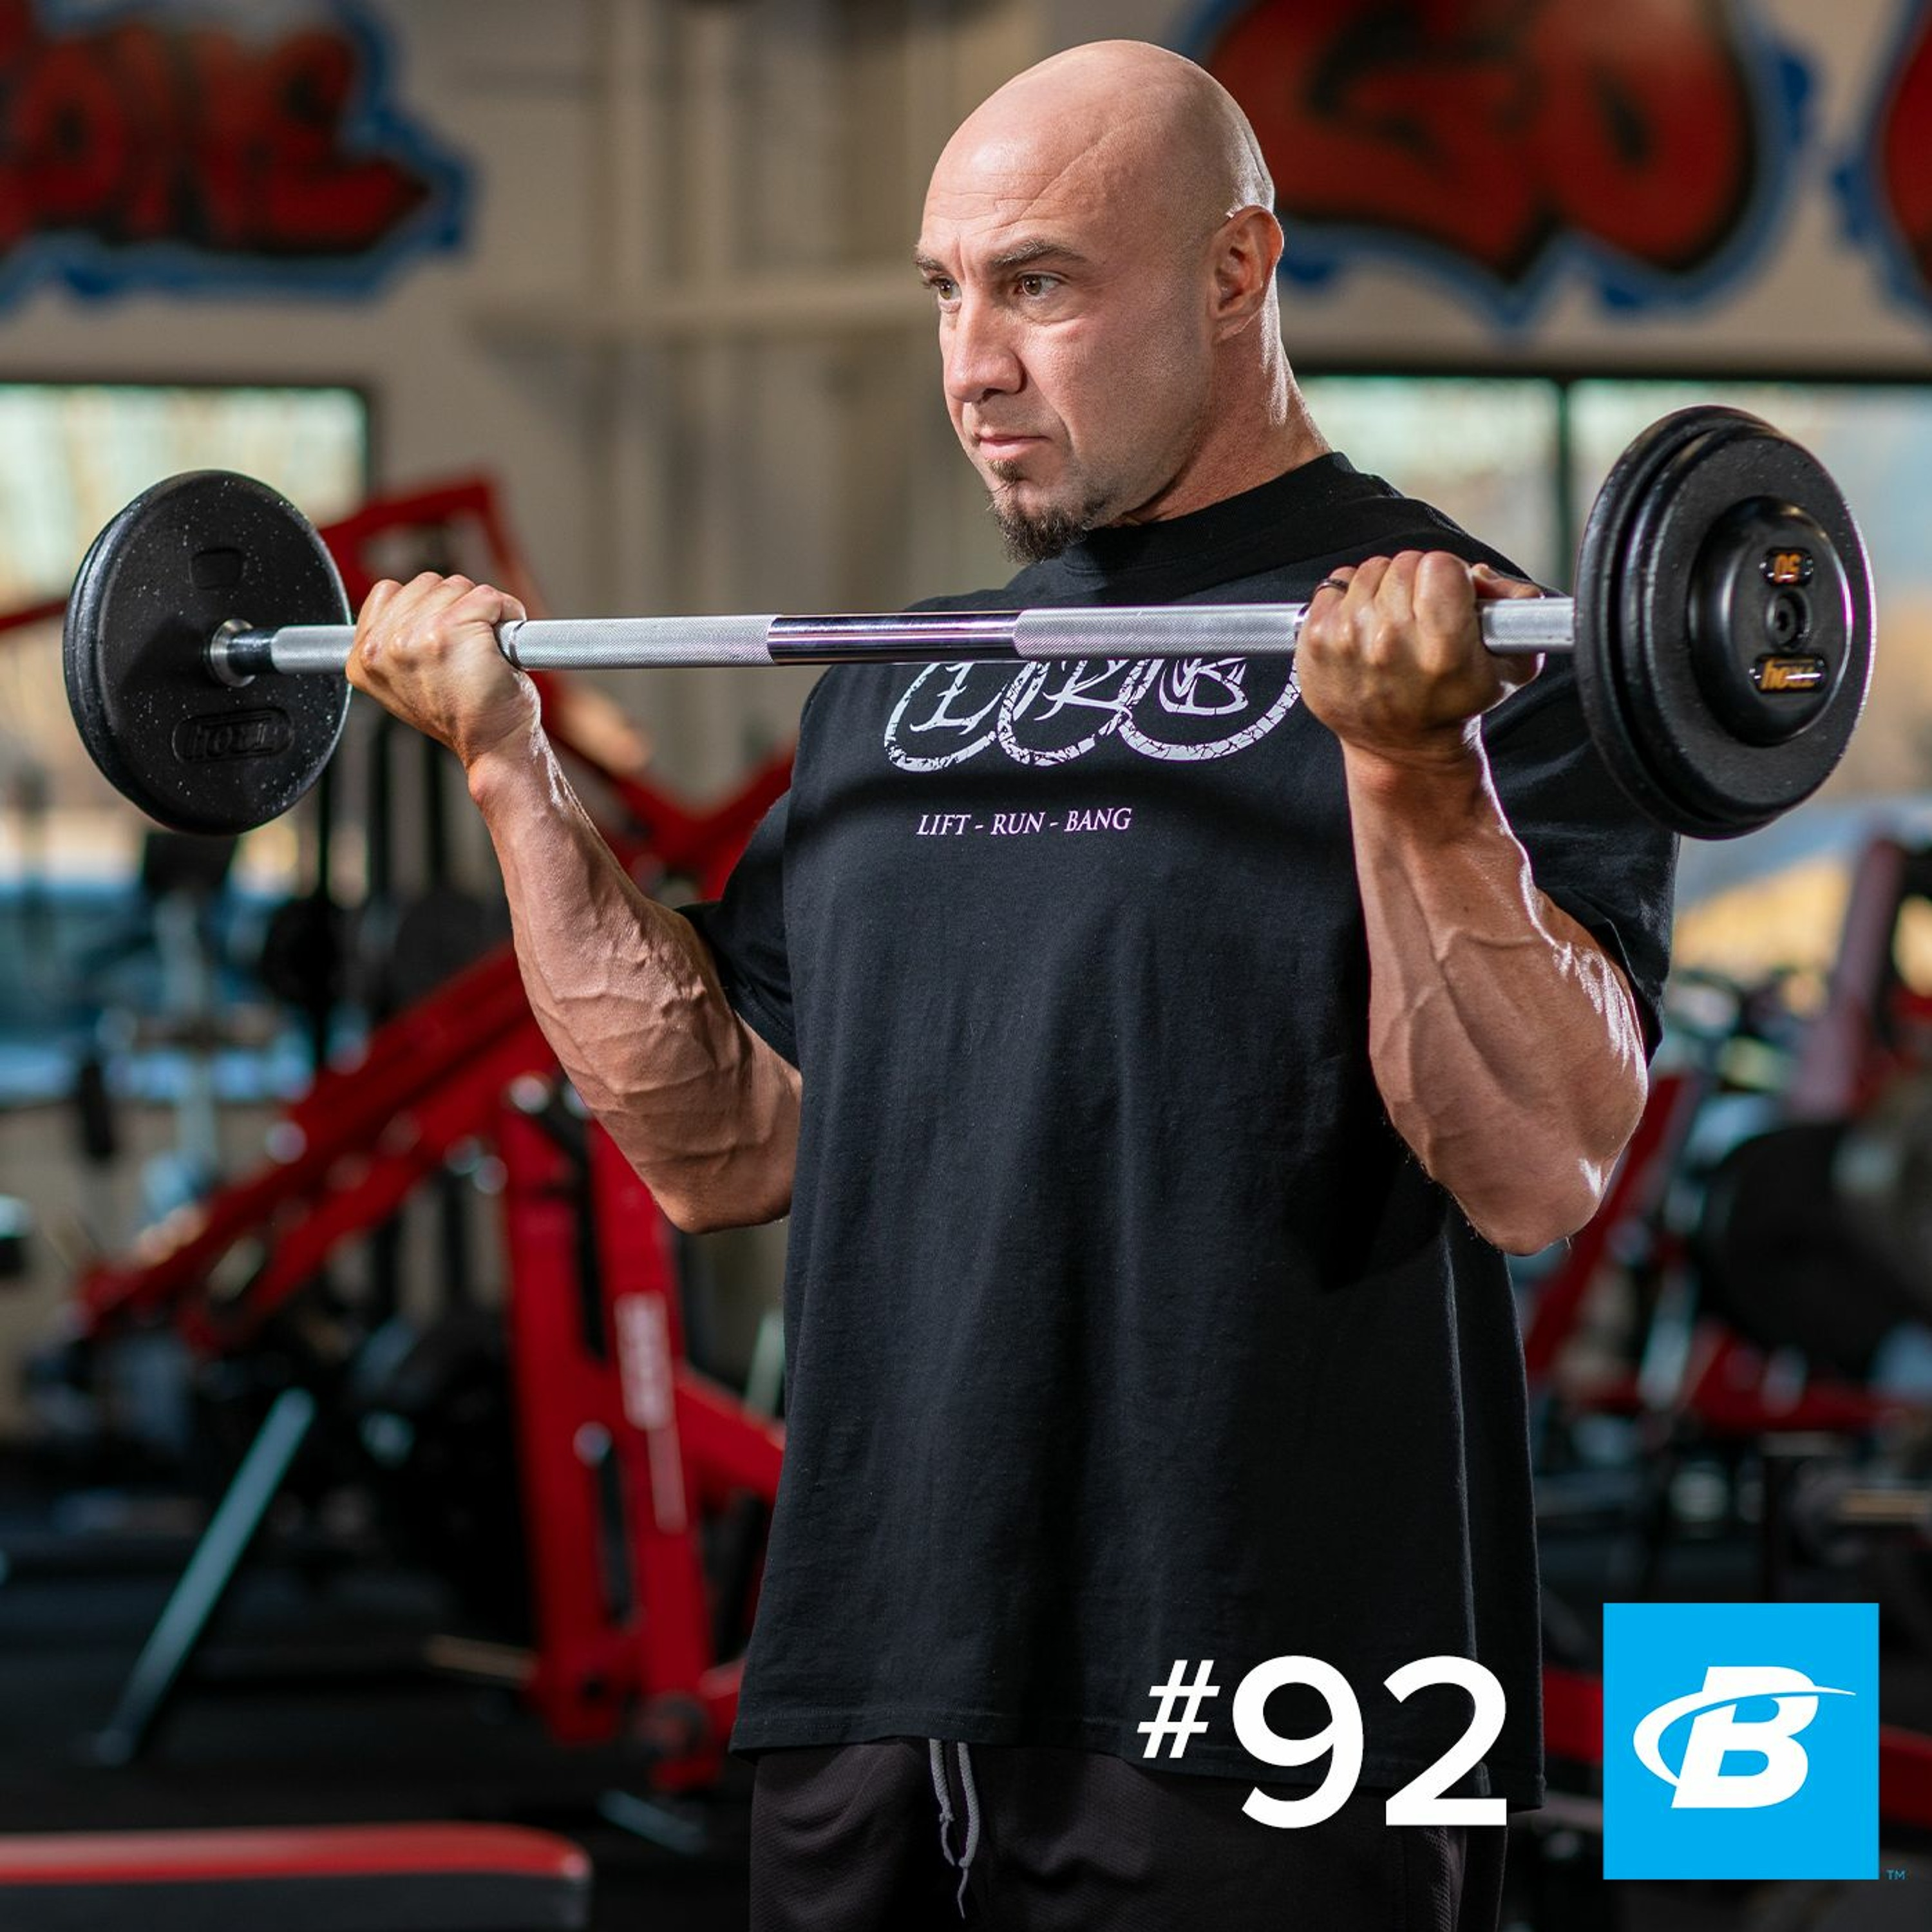 Ep.92: Paul Carter on Hitting Proper Muscle Groups, Sunshine & Creating Adaptive Responses to Stress